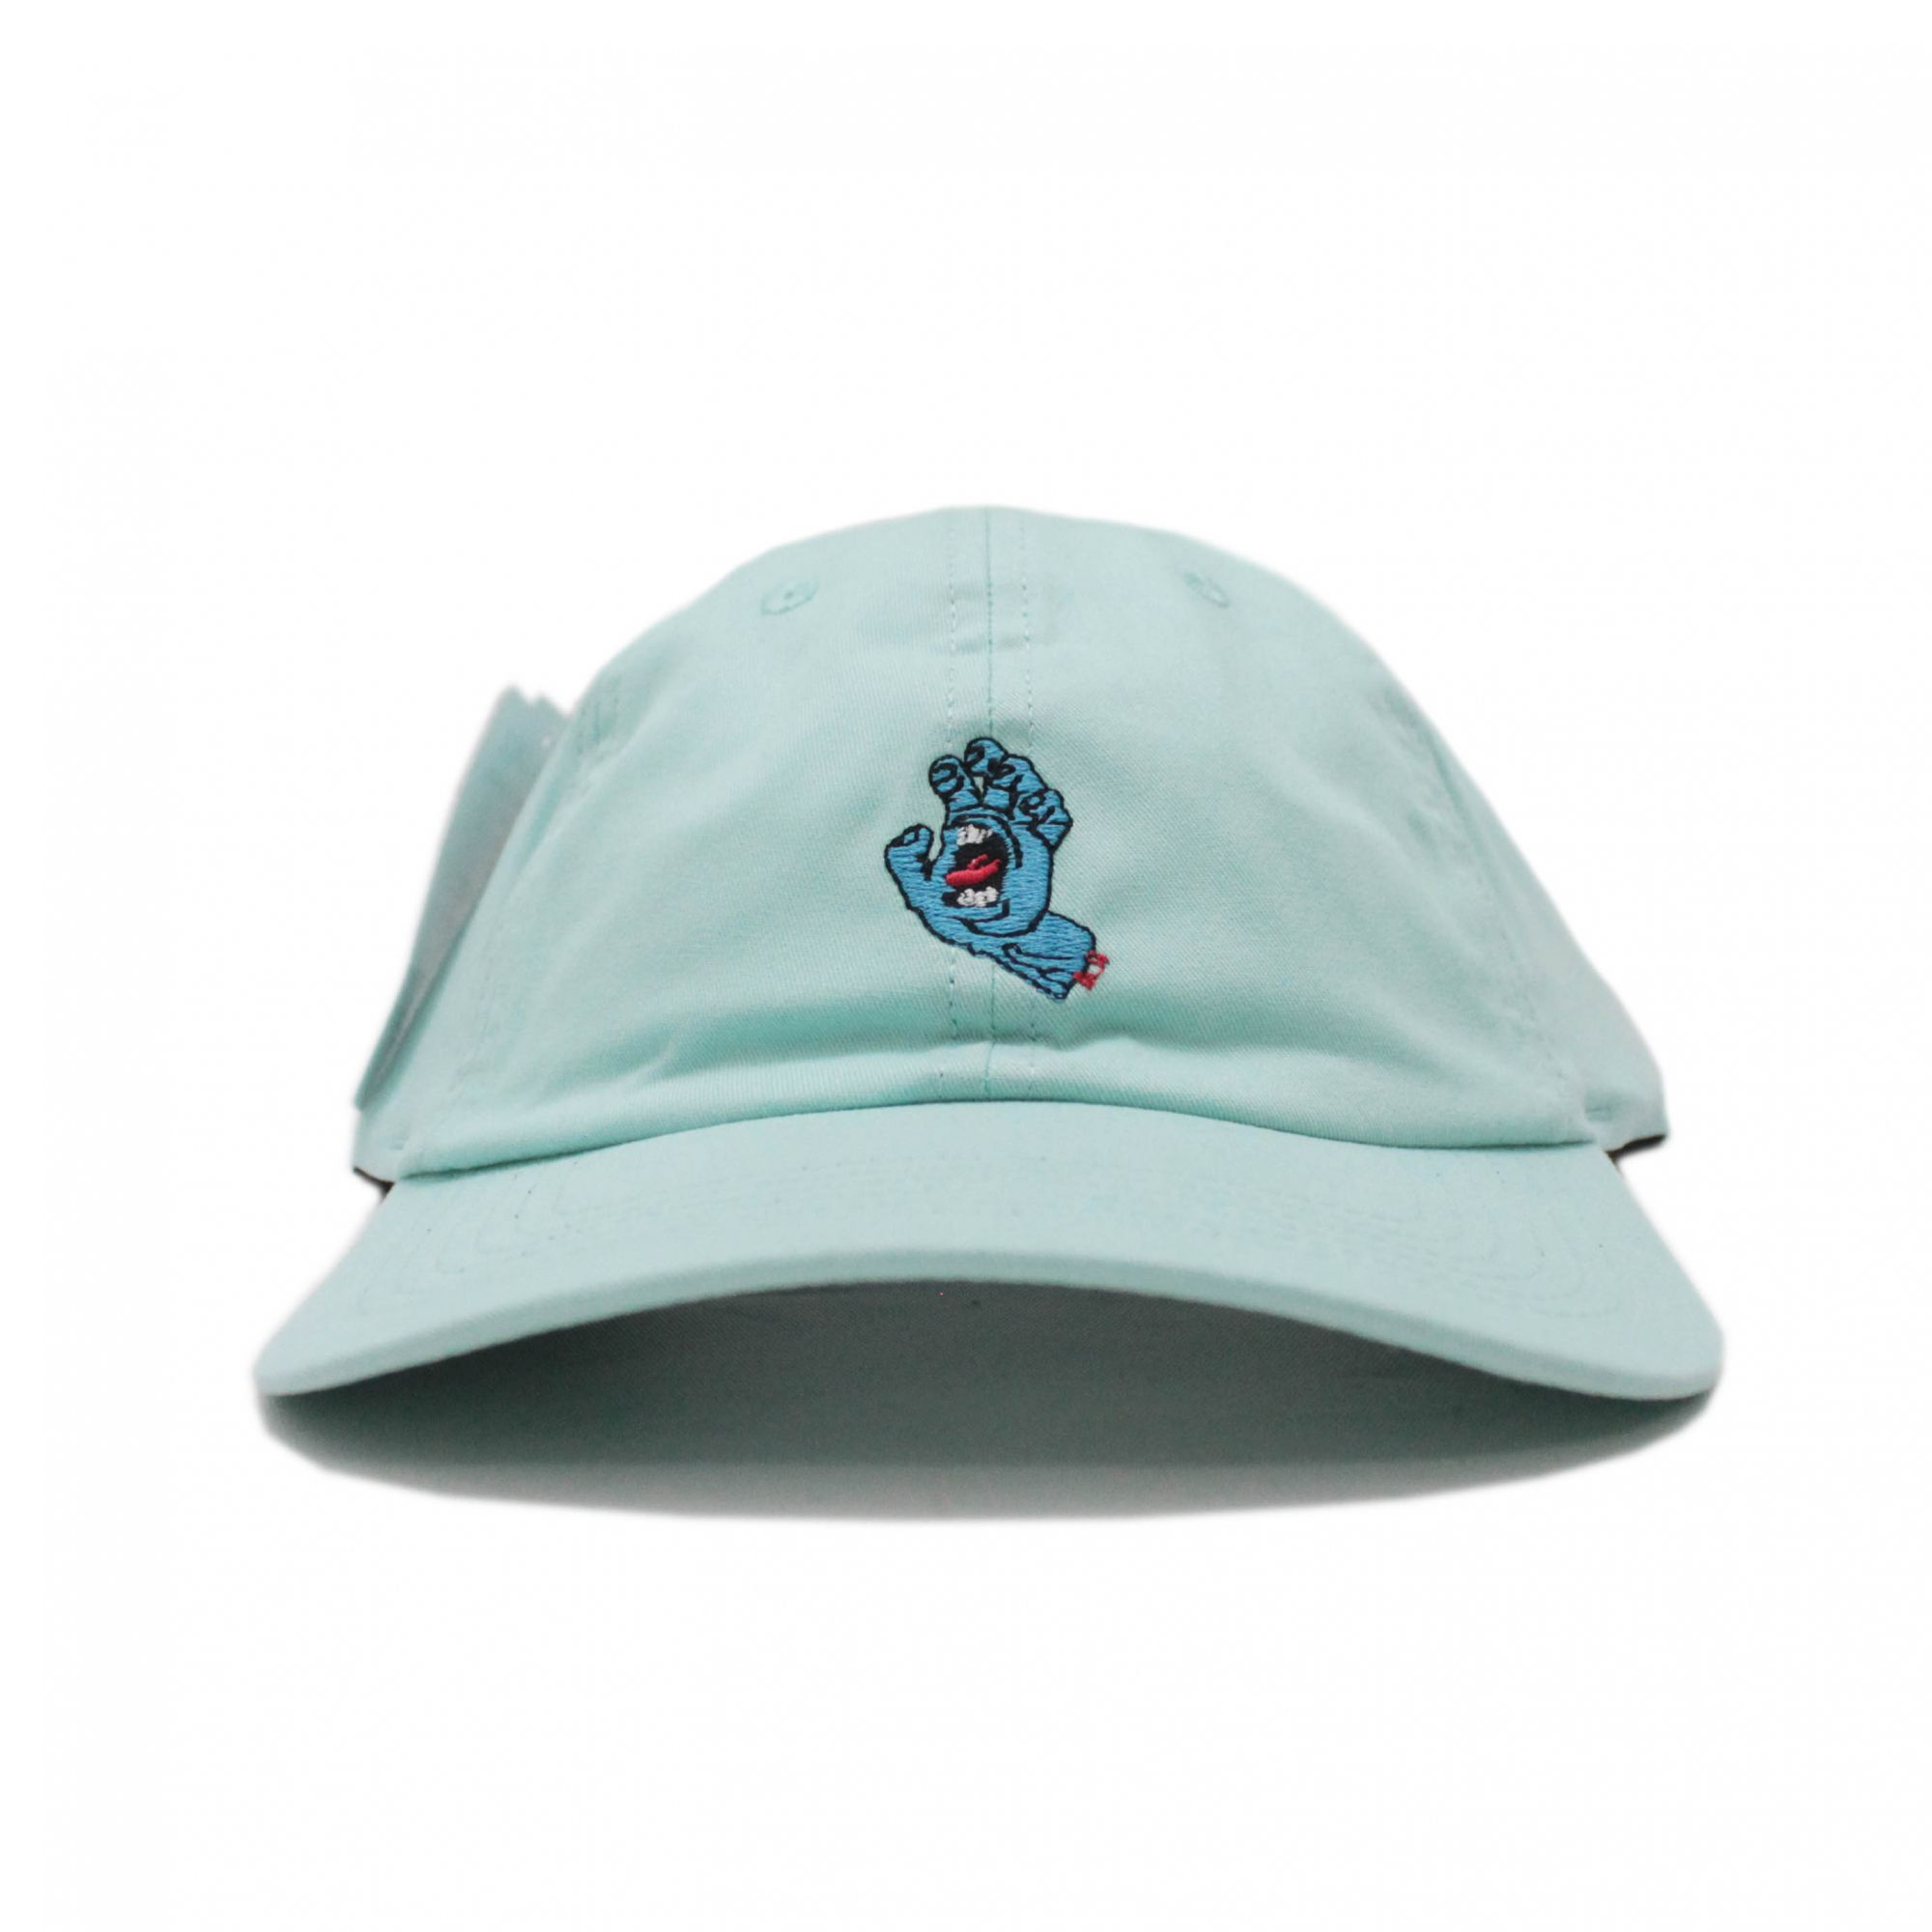 Boné Santa Cruz Dad Hat Screamin Hand Verde Claro